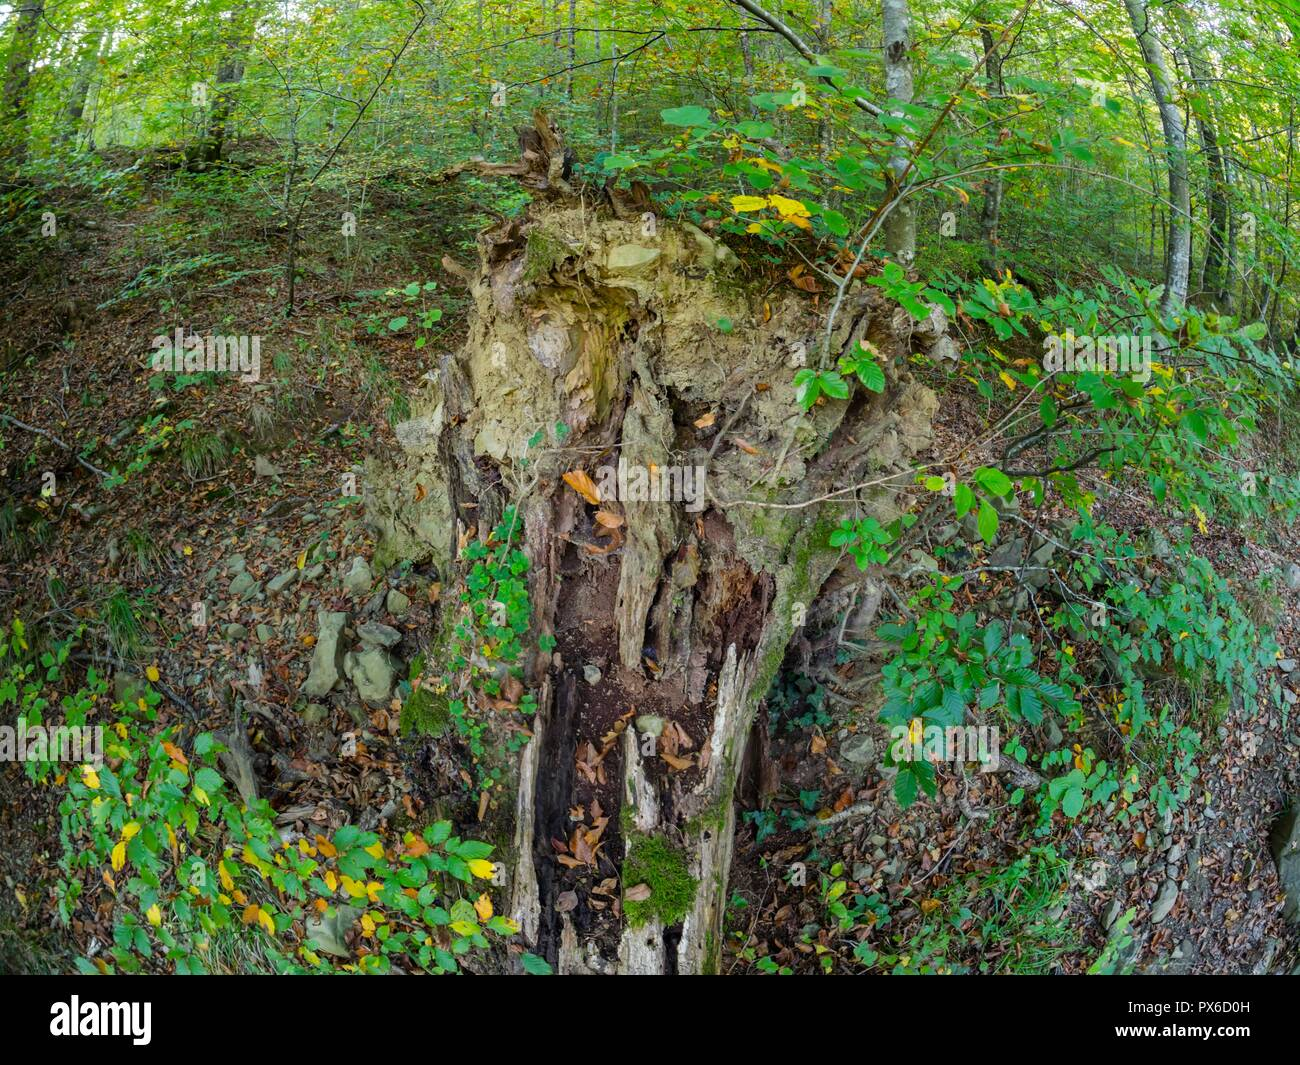 Derelict dried tree in forest - Stock Image